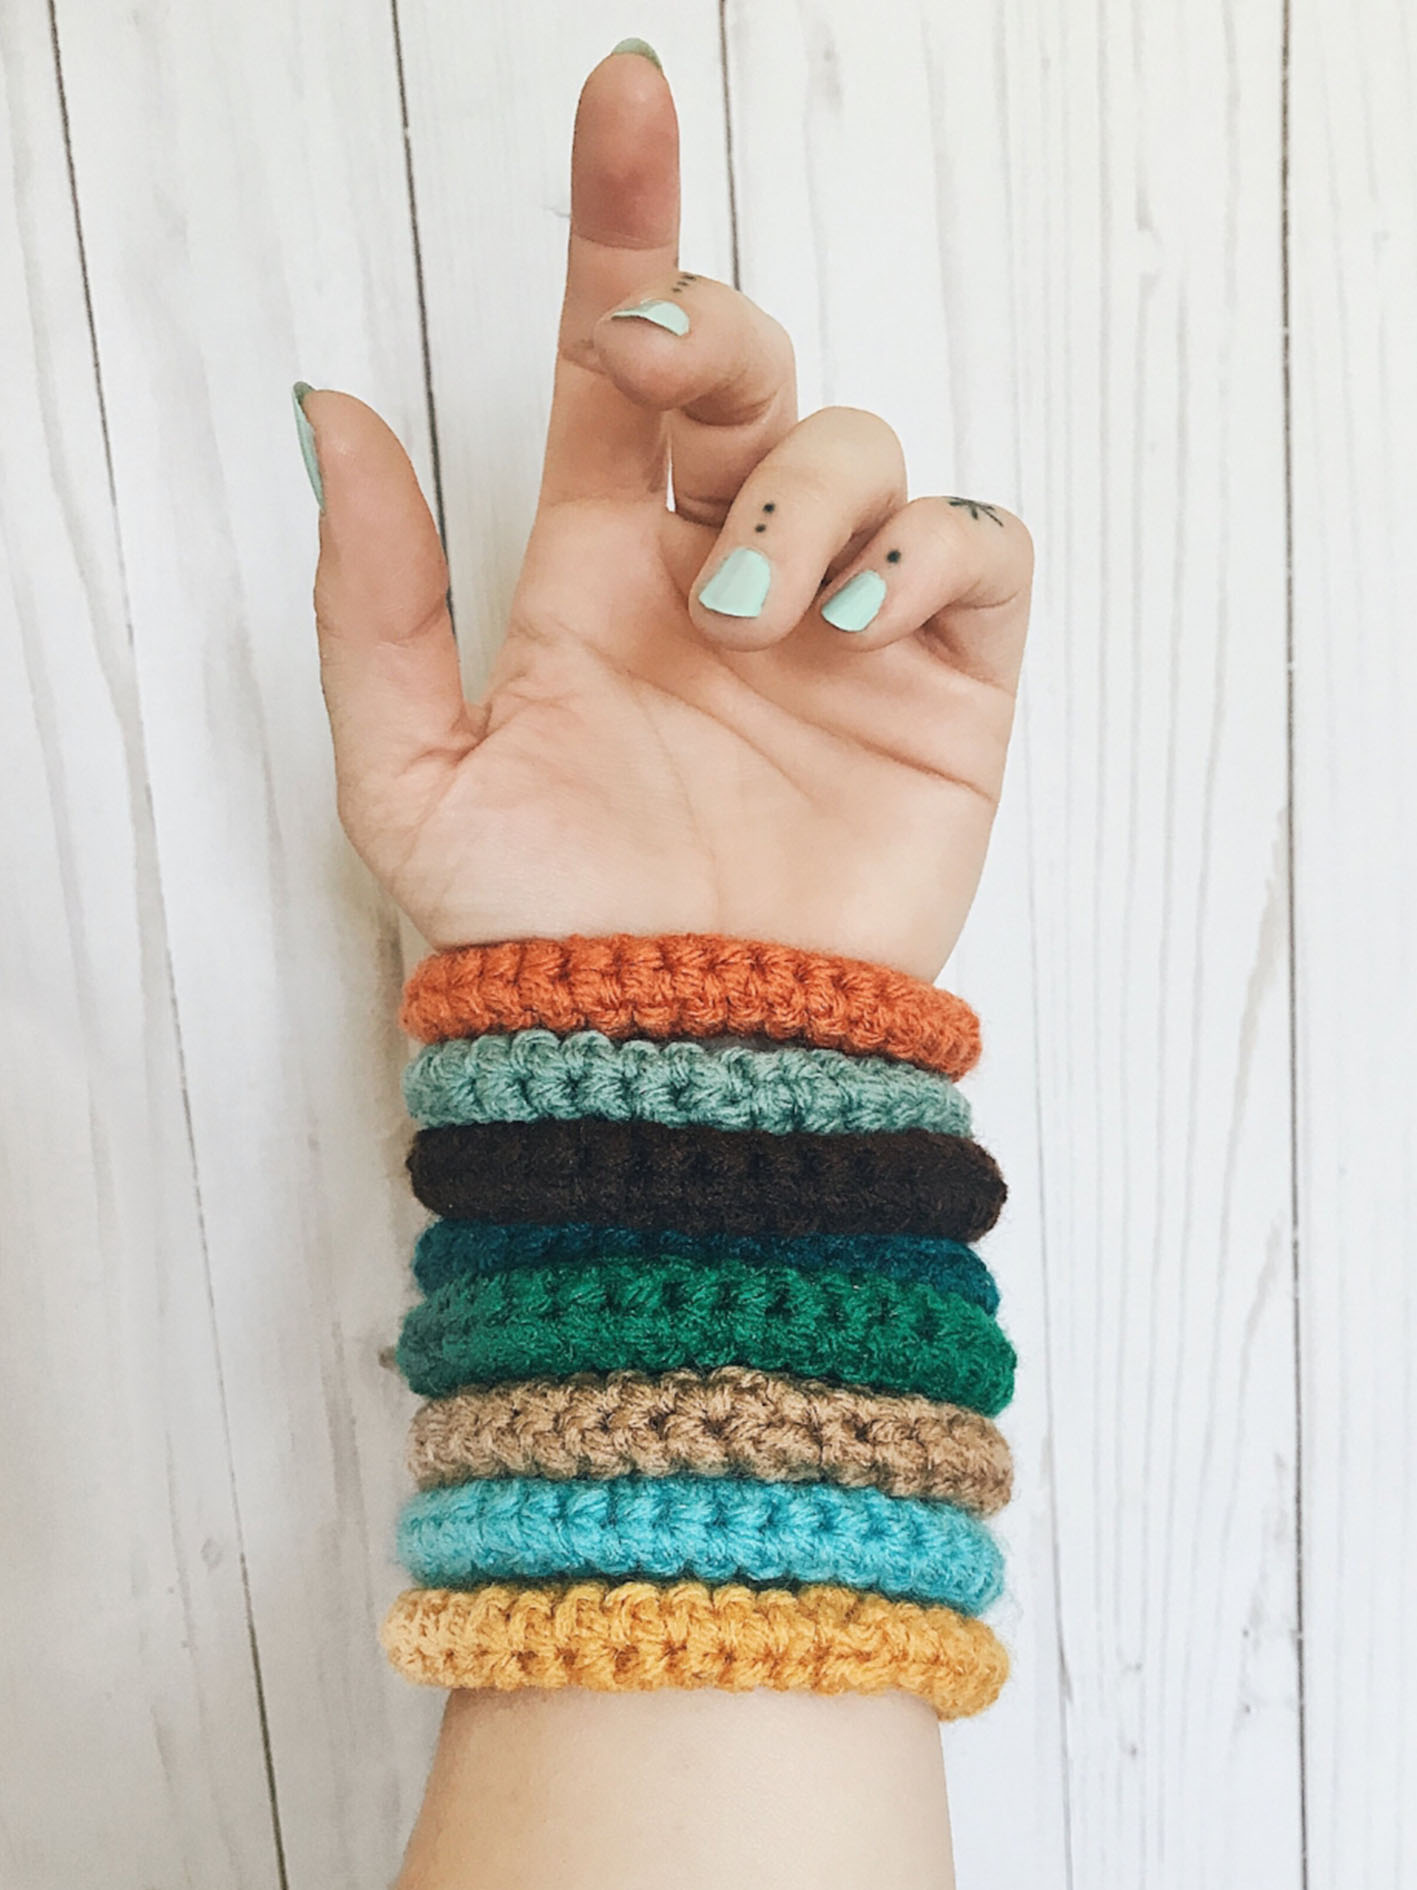 35-free-gift-to-friend-crochet-bracelets-new-2019